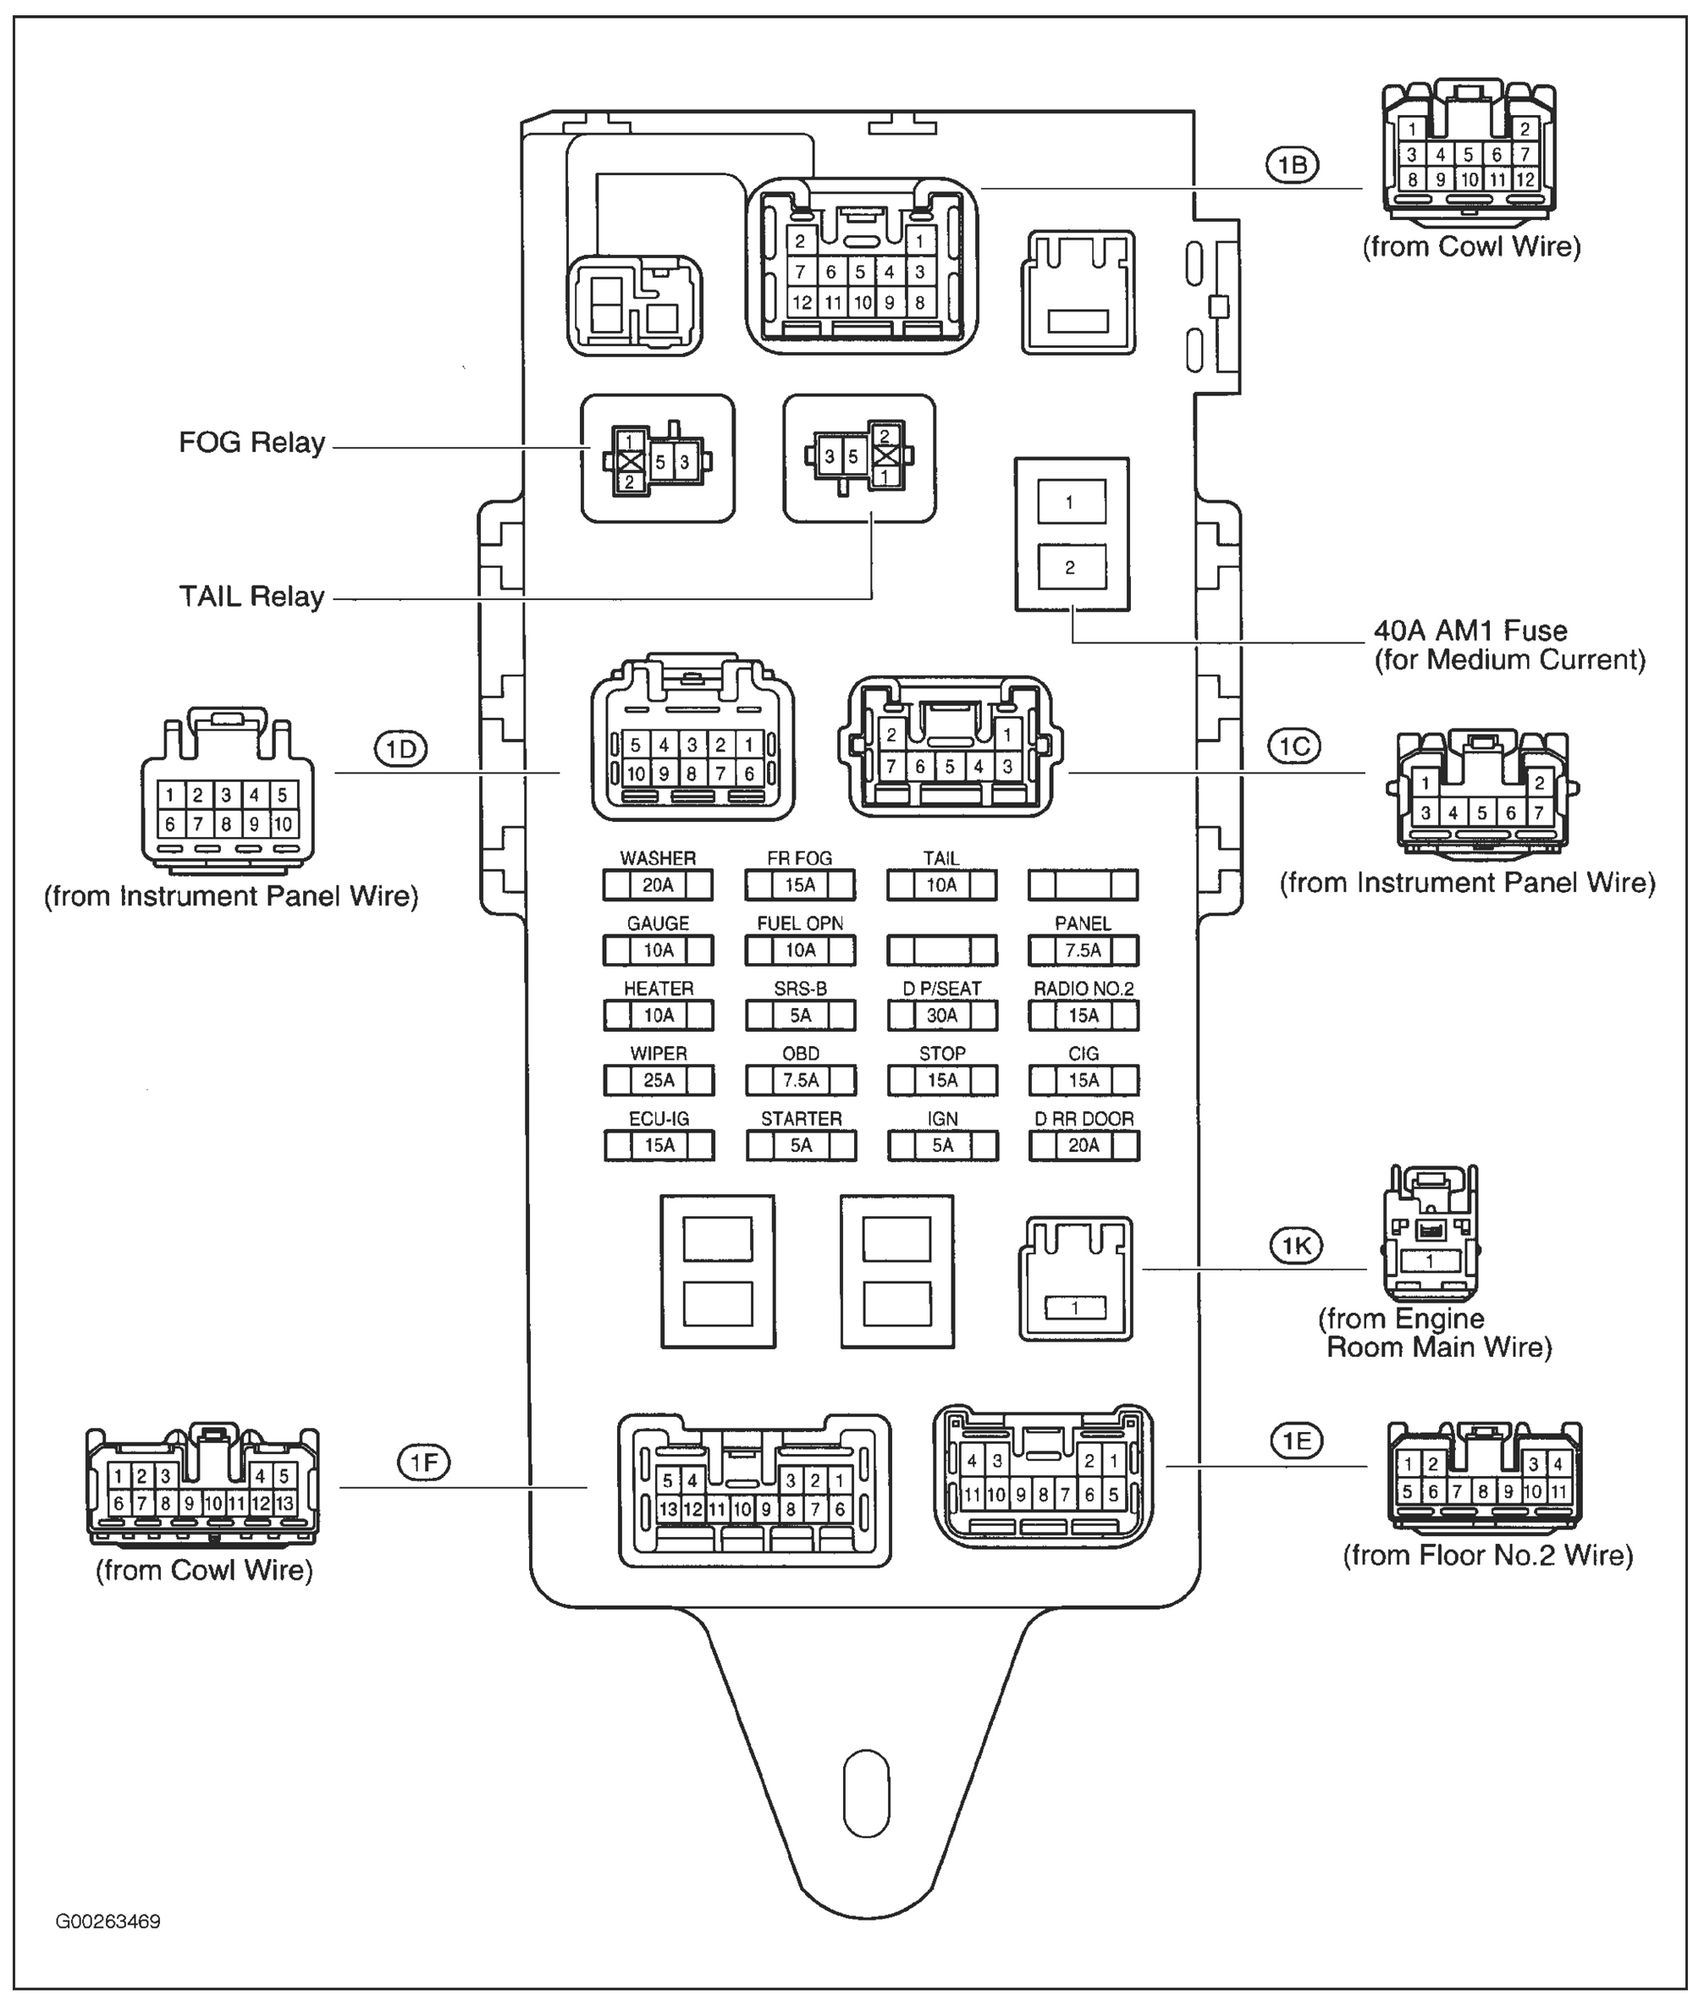 2007 lexus gs 350 fuse box diagram